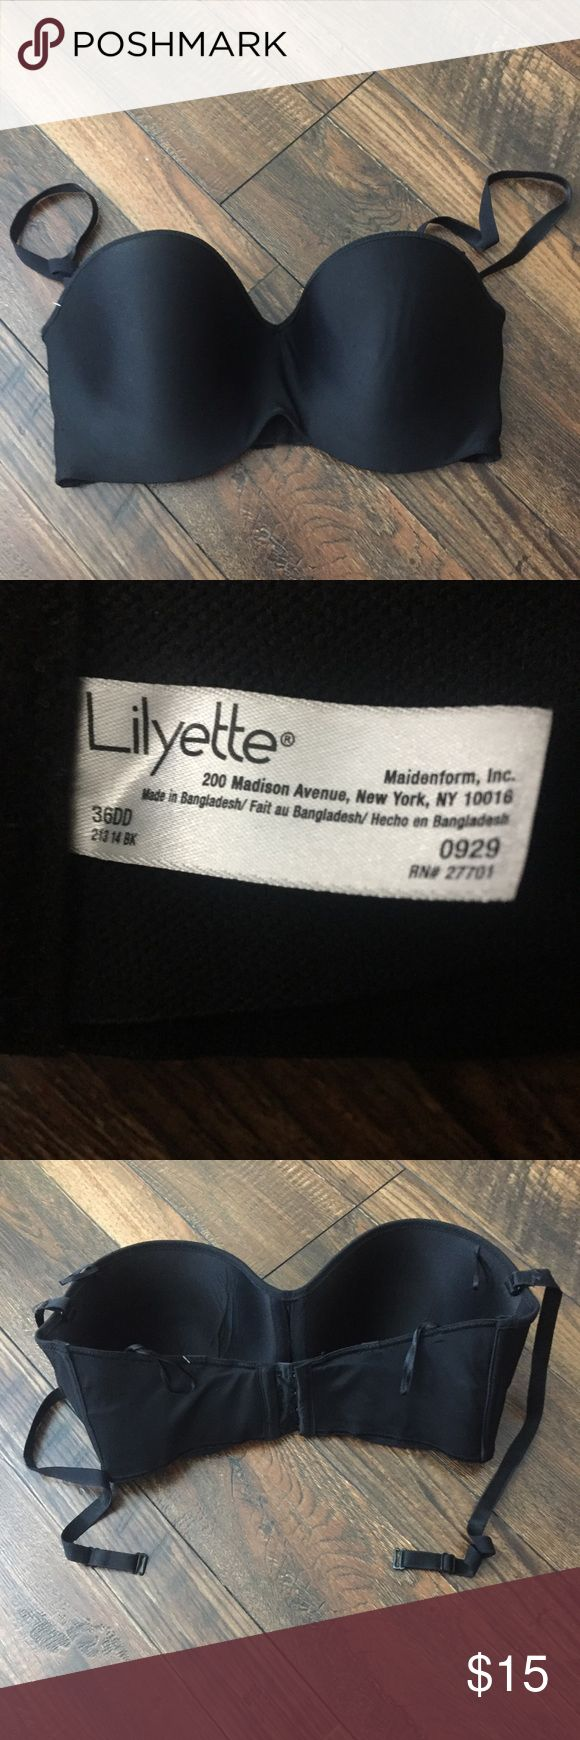 Lilyette Black Convertible 36DD Bra Lilyette Black Convertible 36DD Bra. Worn maybe four or five times. Full coverage cup. Four clasp back. Straps included. In excellent condition! Lilyette Intimates & Sleepwear Bras